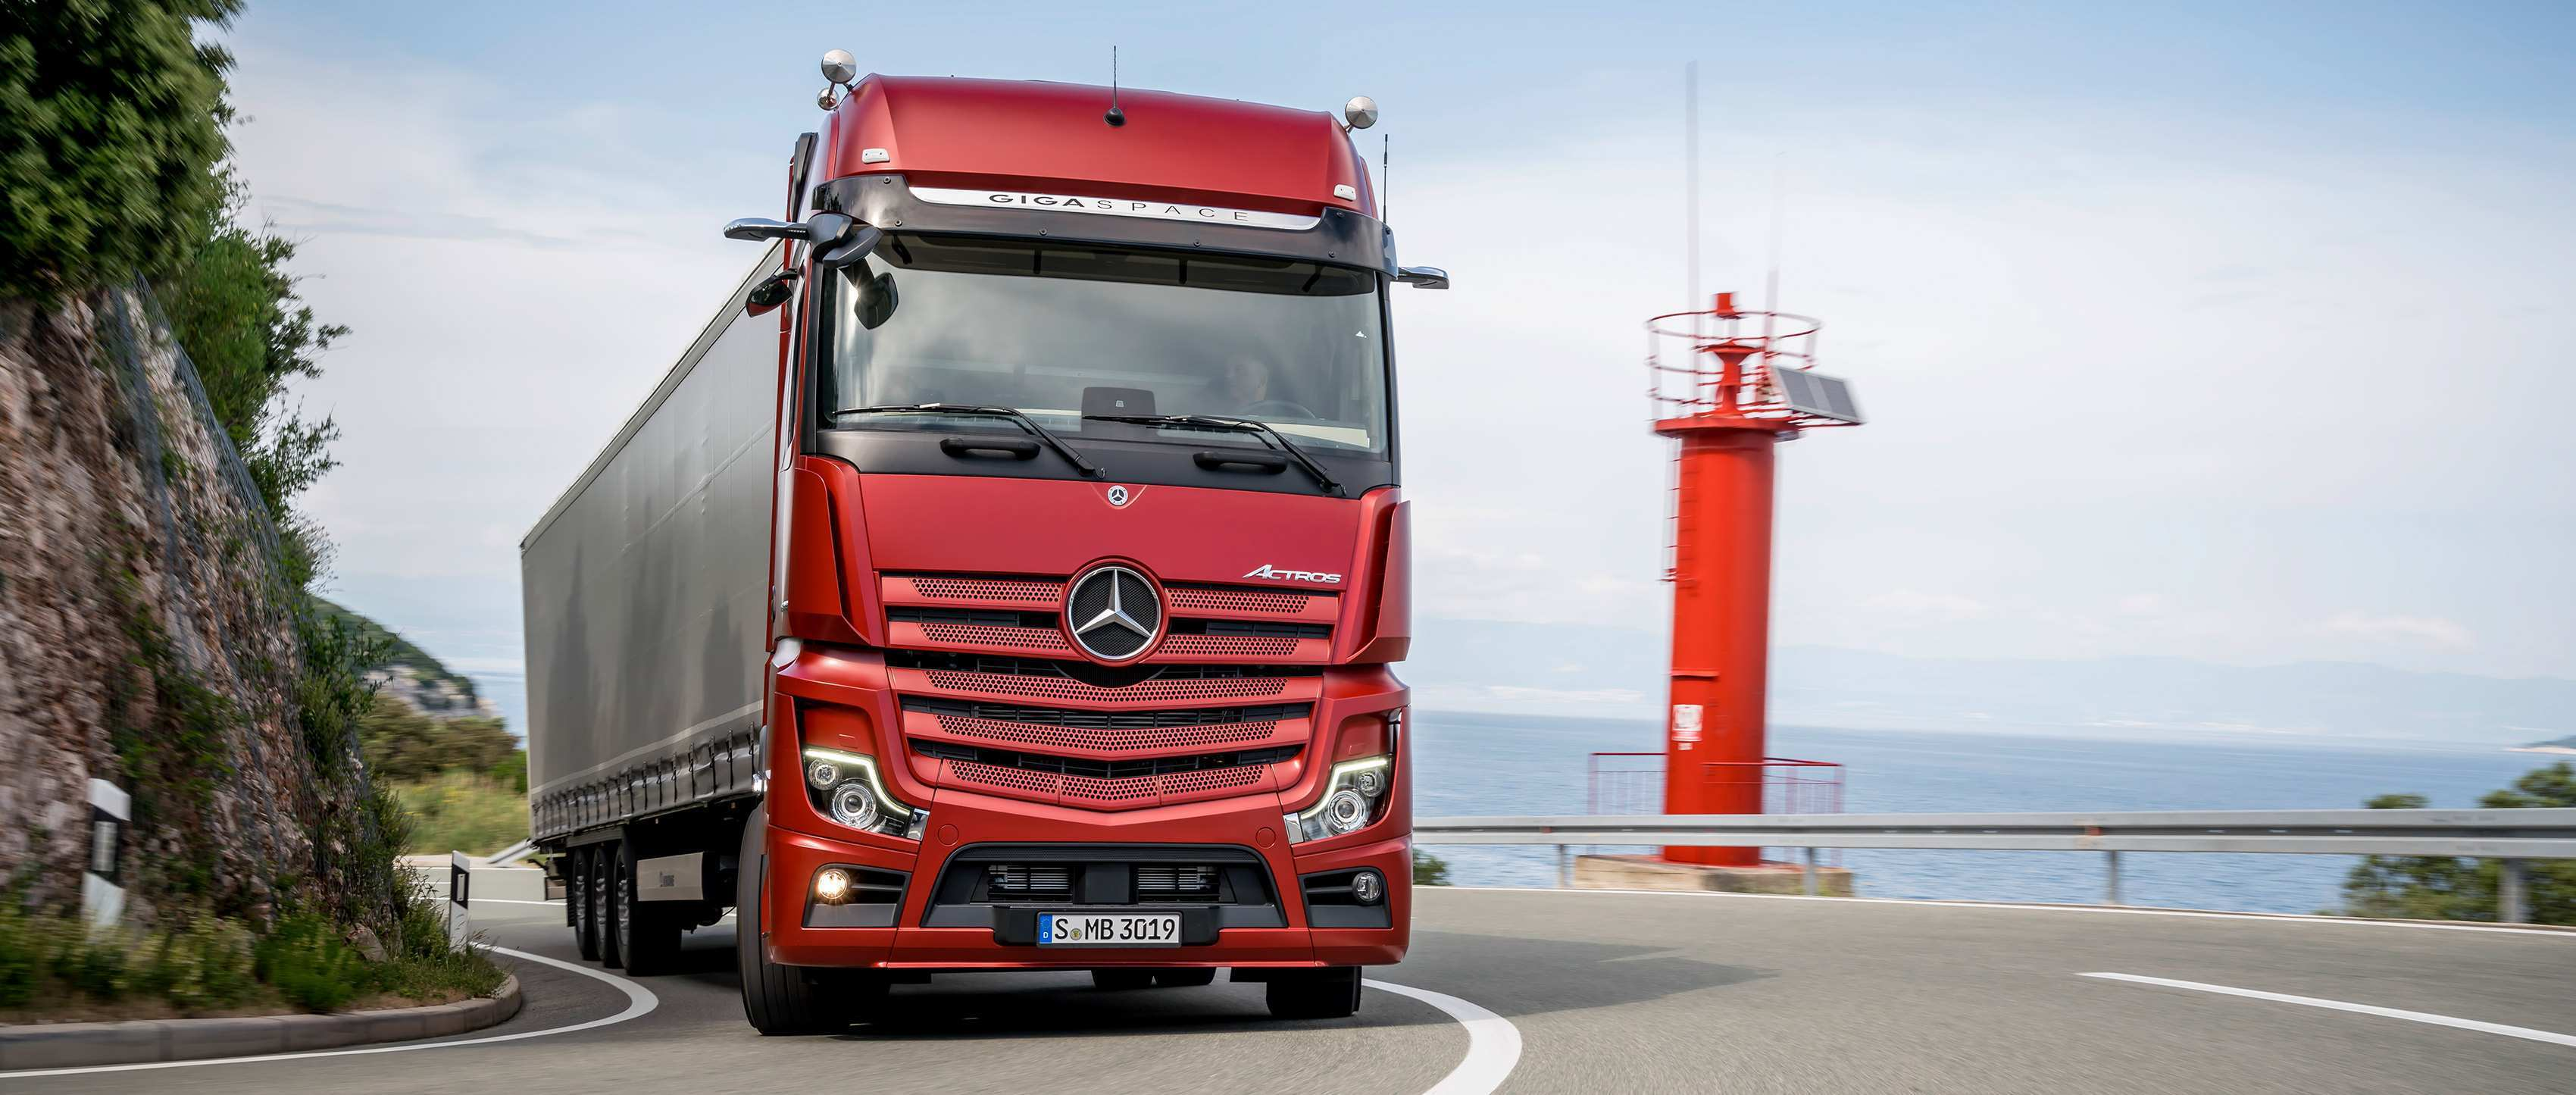 52 All New Mercedes Truck 2019 Interior with Mercedes Truck 2019